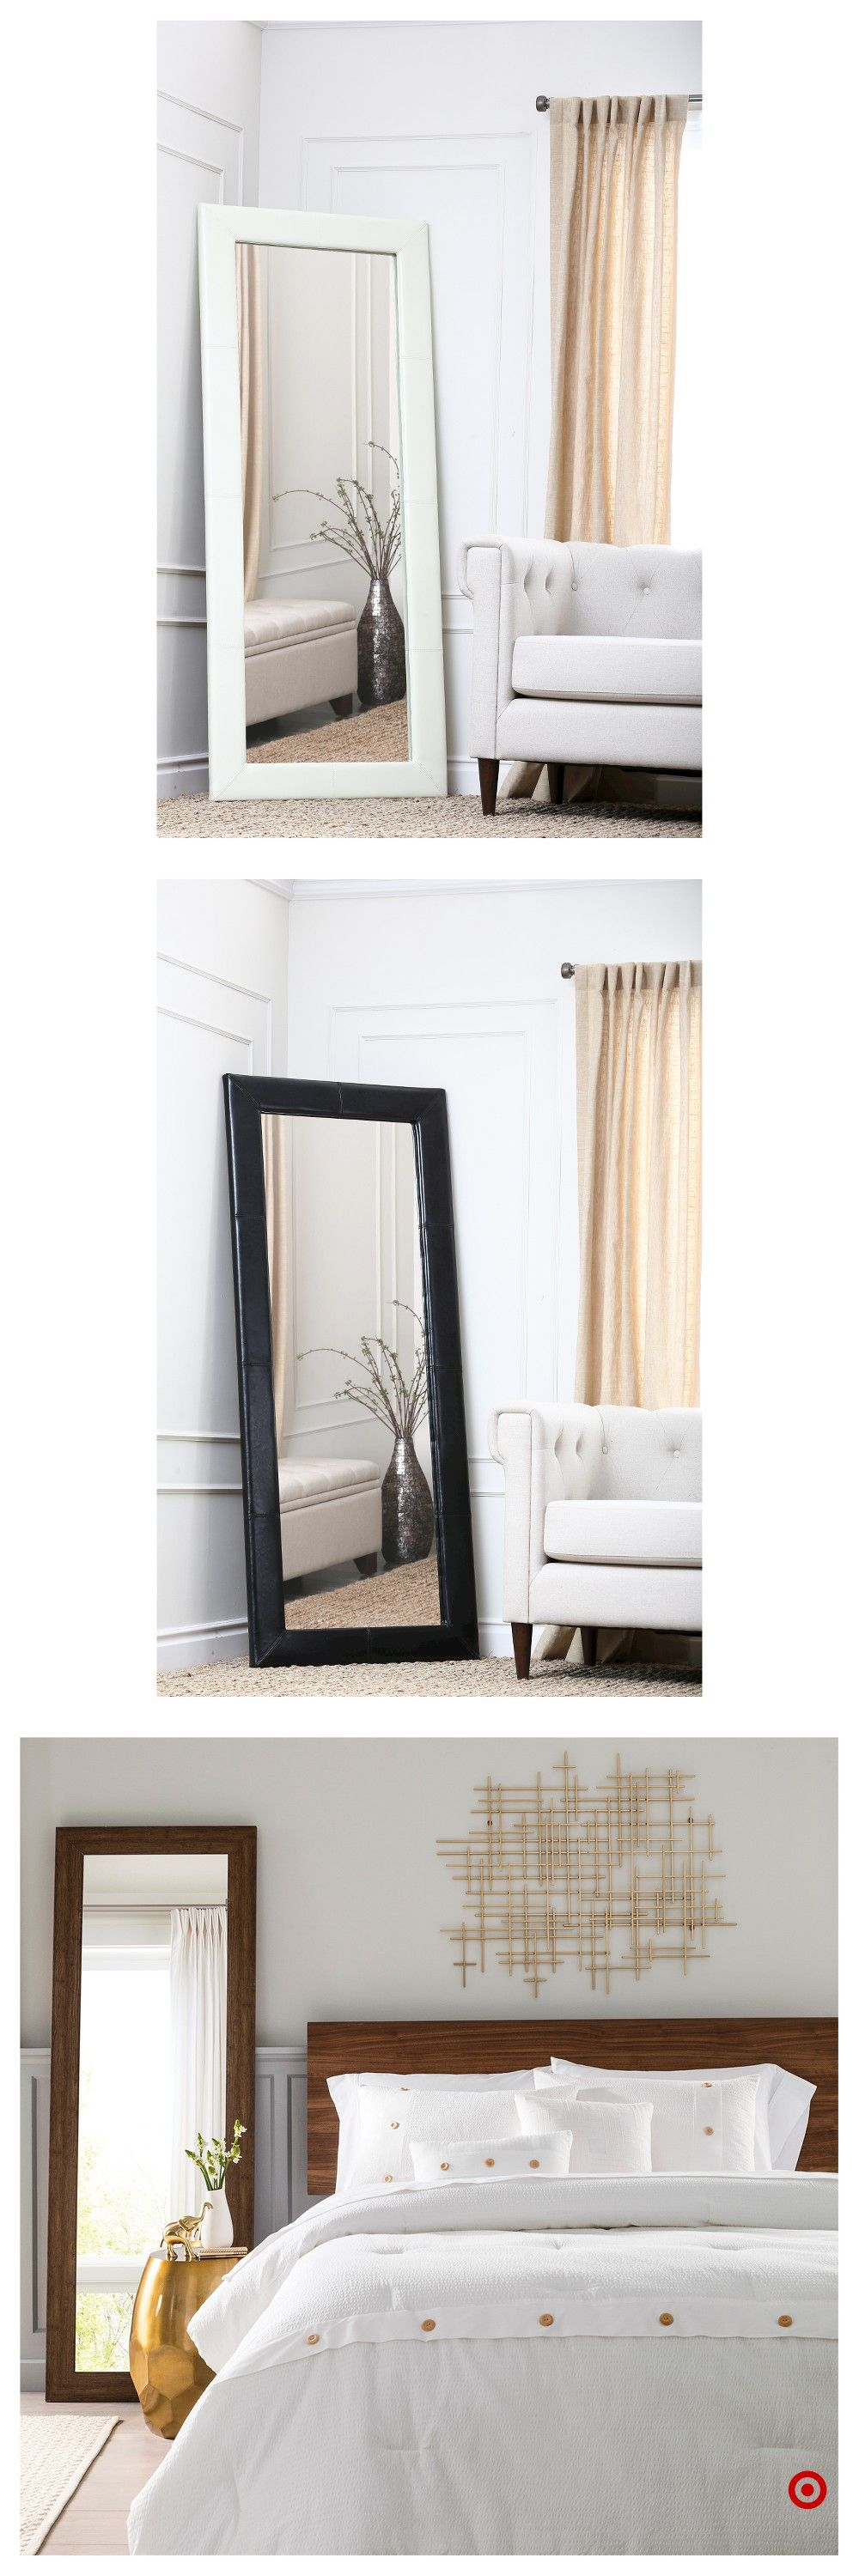 Shop Target For Floor Mirror You Will Love At Great Low Prices Free Shipping On All Orders Or Free Same Day Pick Up In Stor Room Planning Home Apartment Decor